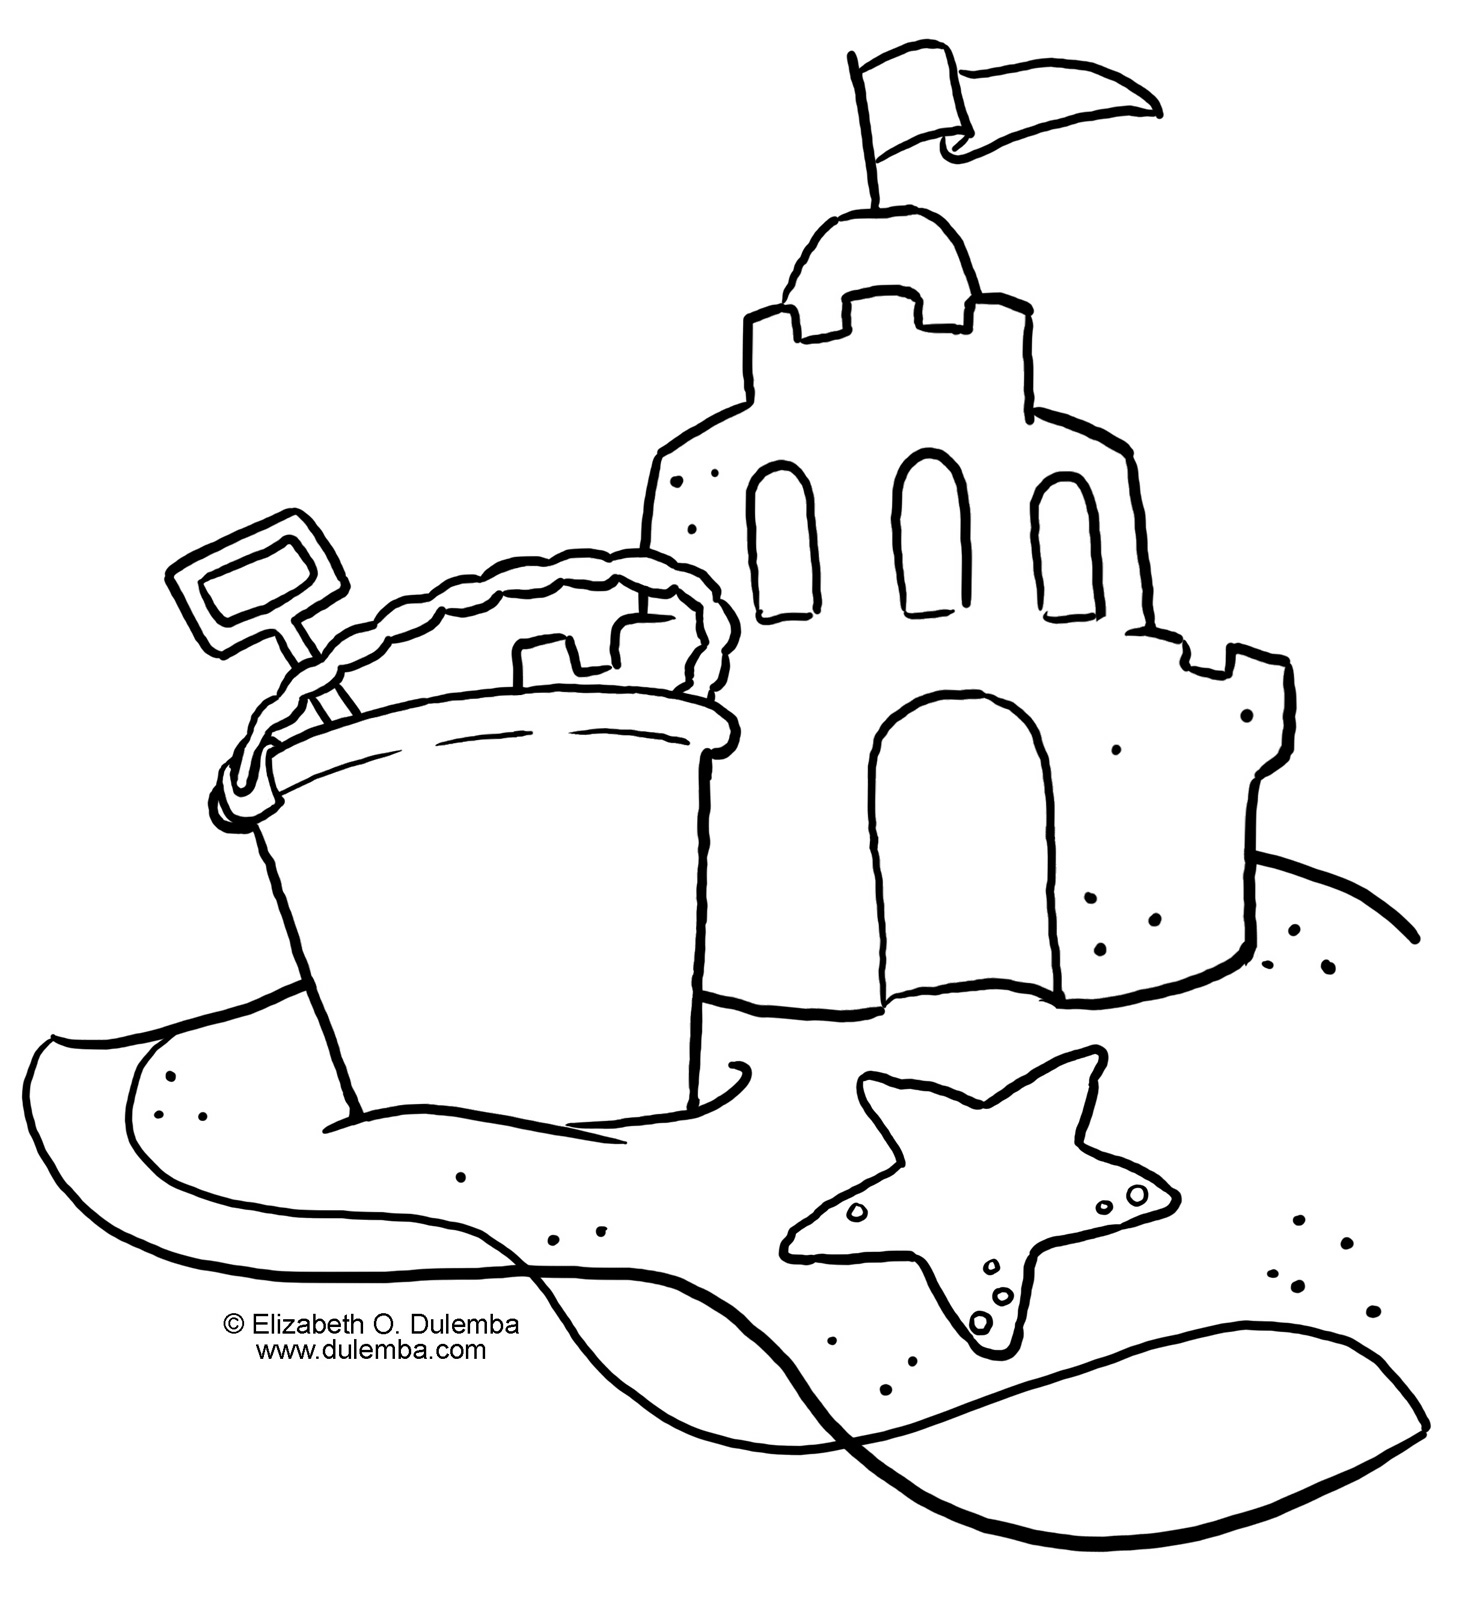 Coloring Pages: Beach Coloring Pages Collection 2010